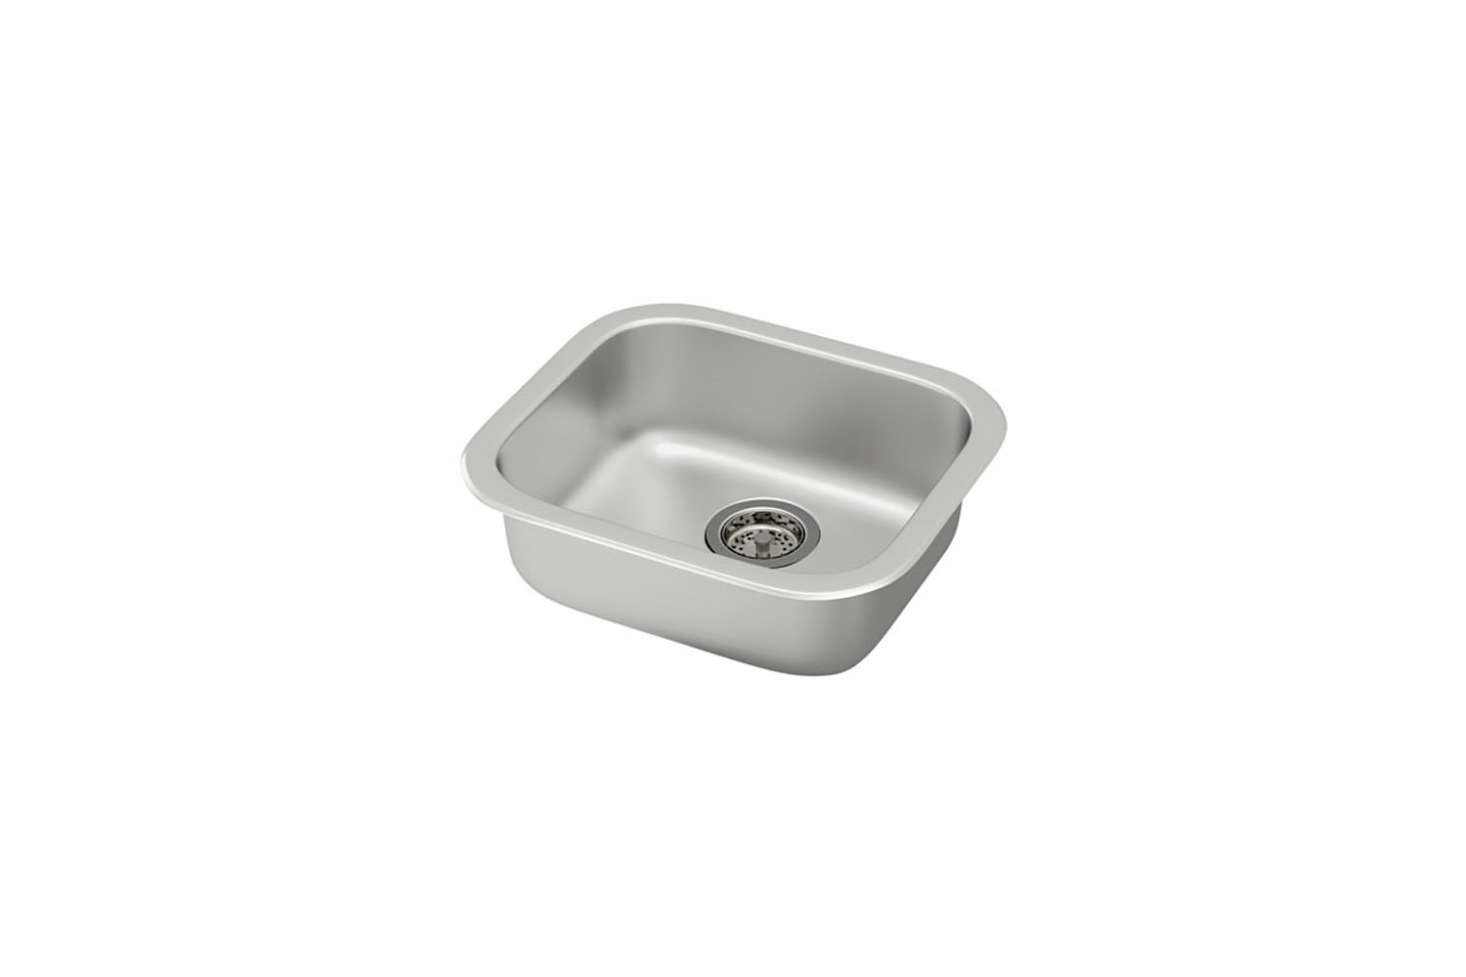 The small prep sink, theFyndig Sink in stainless steel is $3src=